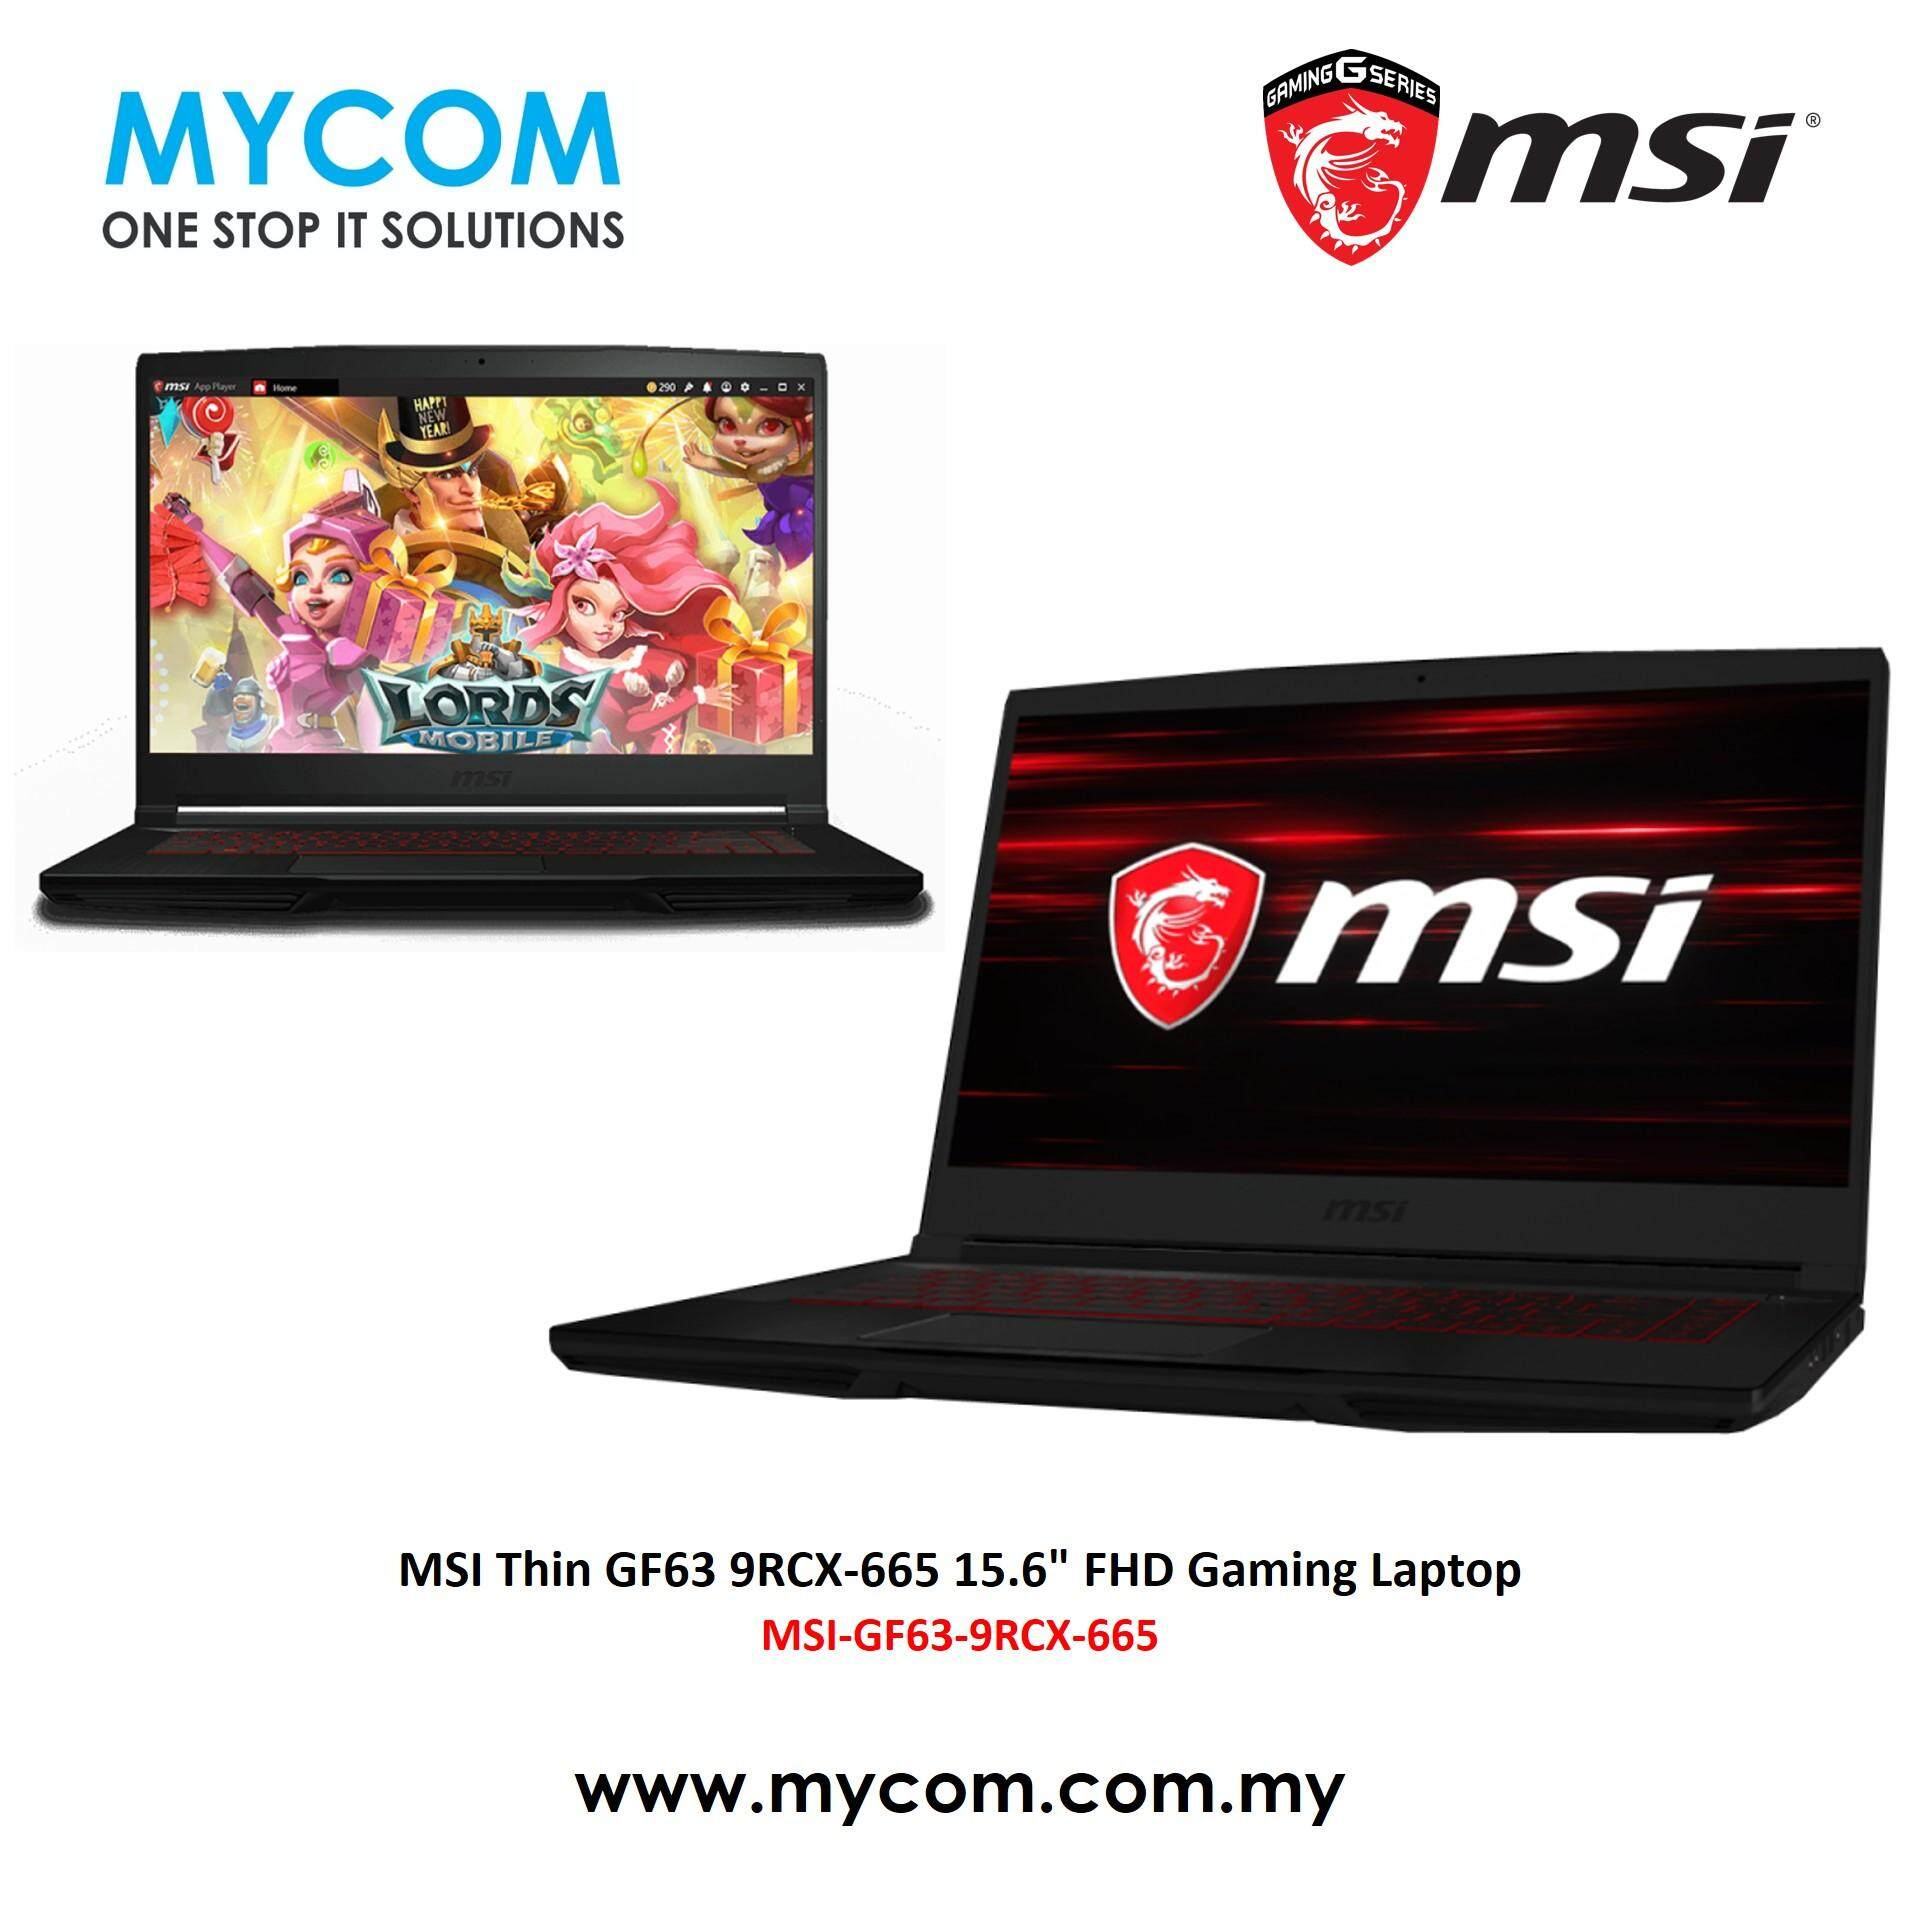 MSI Thin GF63 9RCX-665 15.6  FHD Gaming Laptop(I5-9300H,4GB,256GB,GTX1050 Ti 4GB,W10) Malaysia